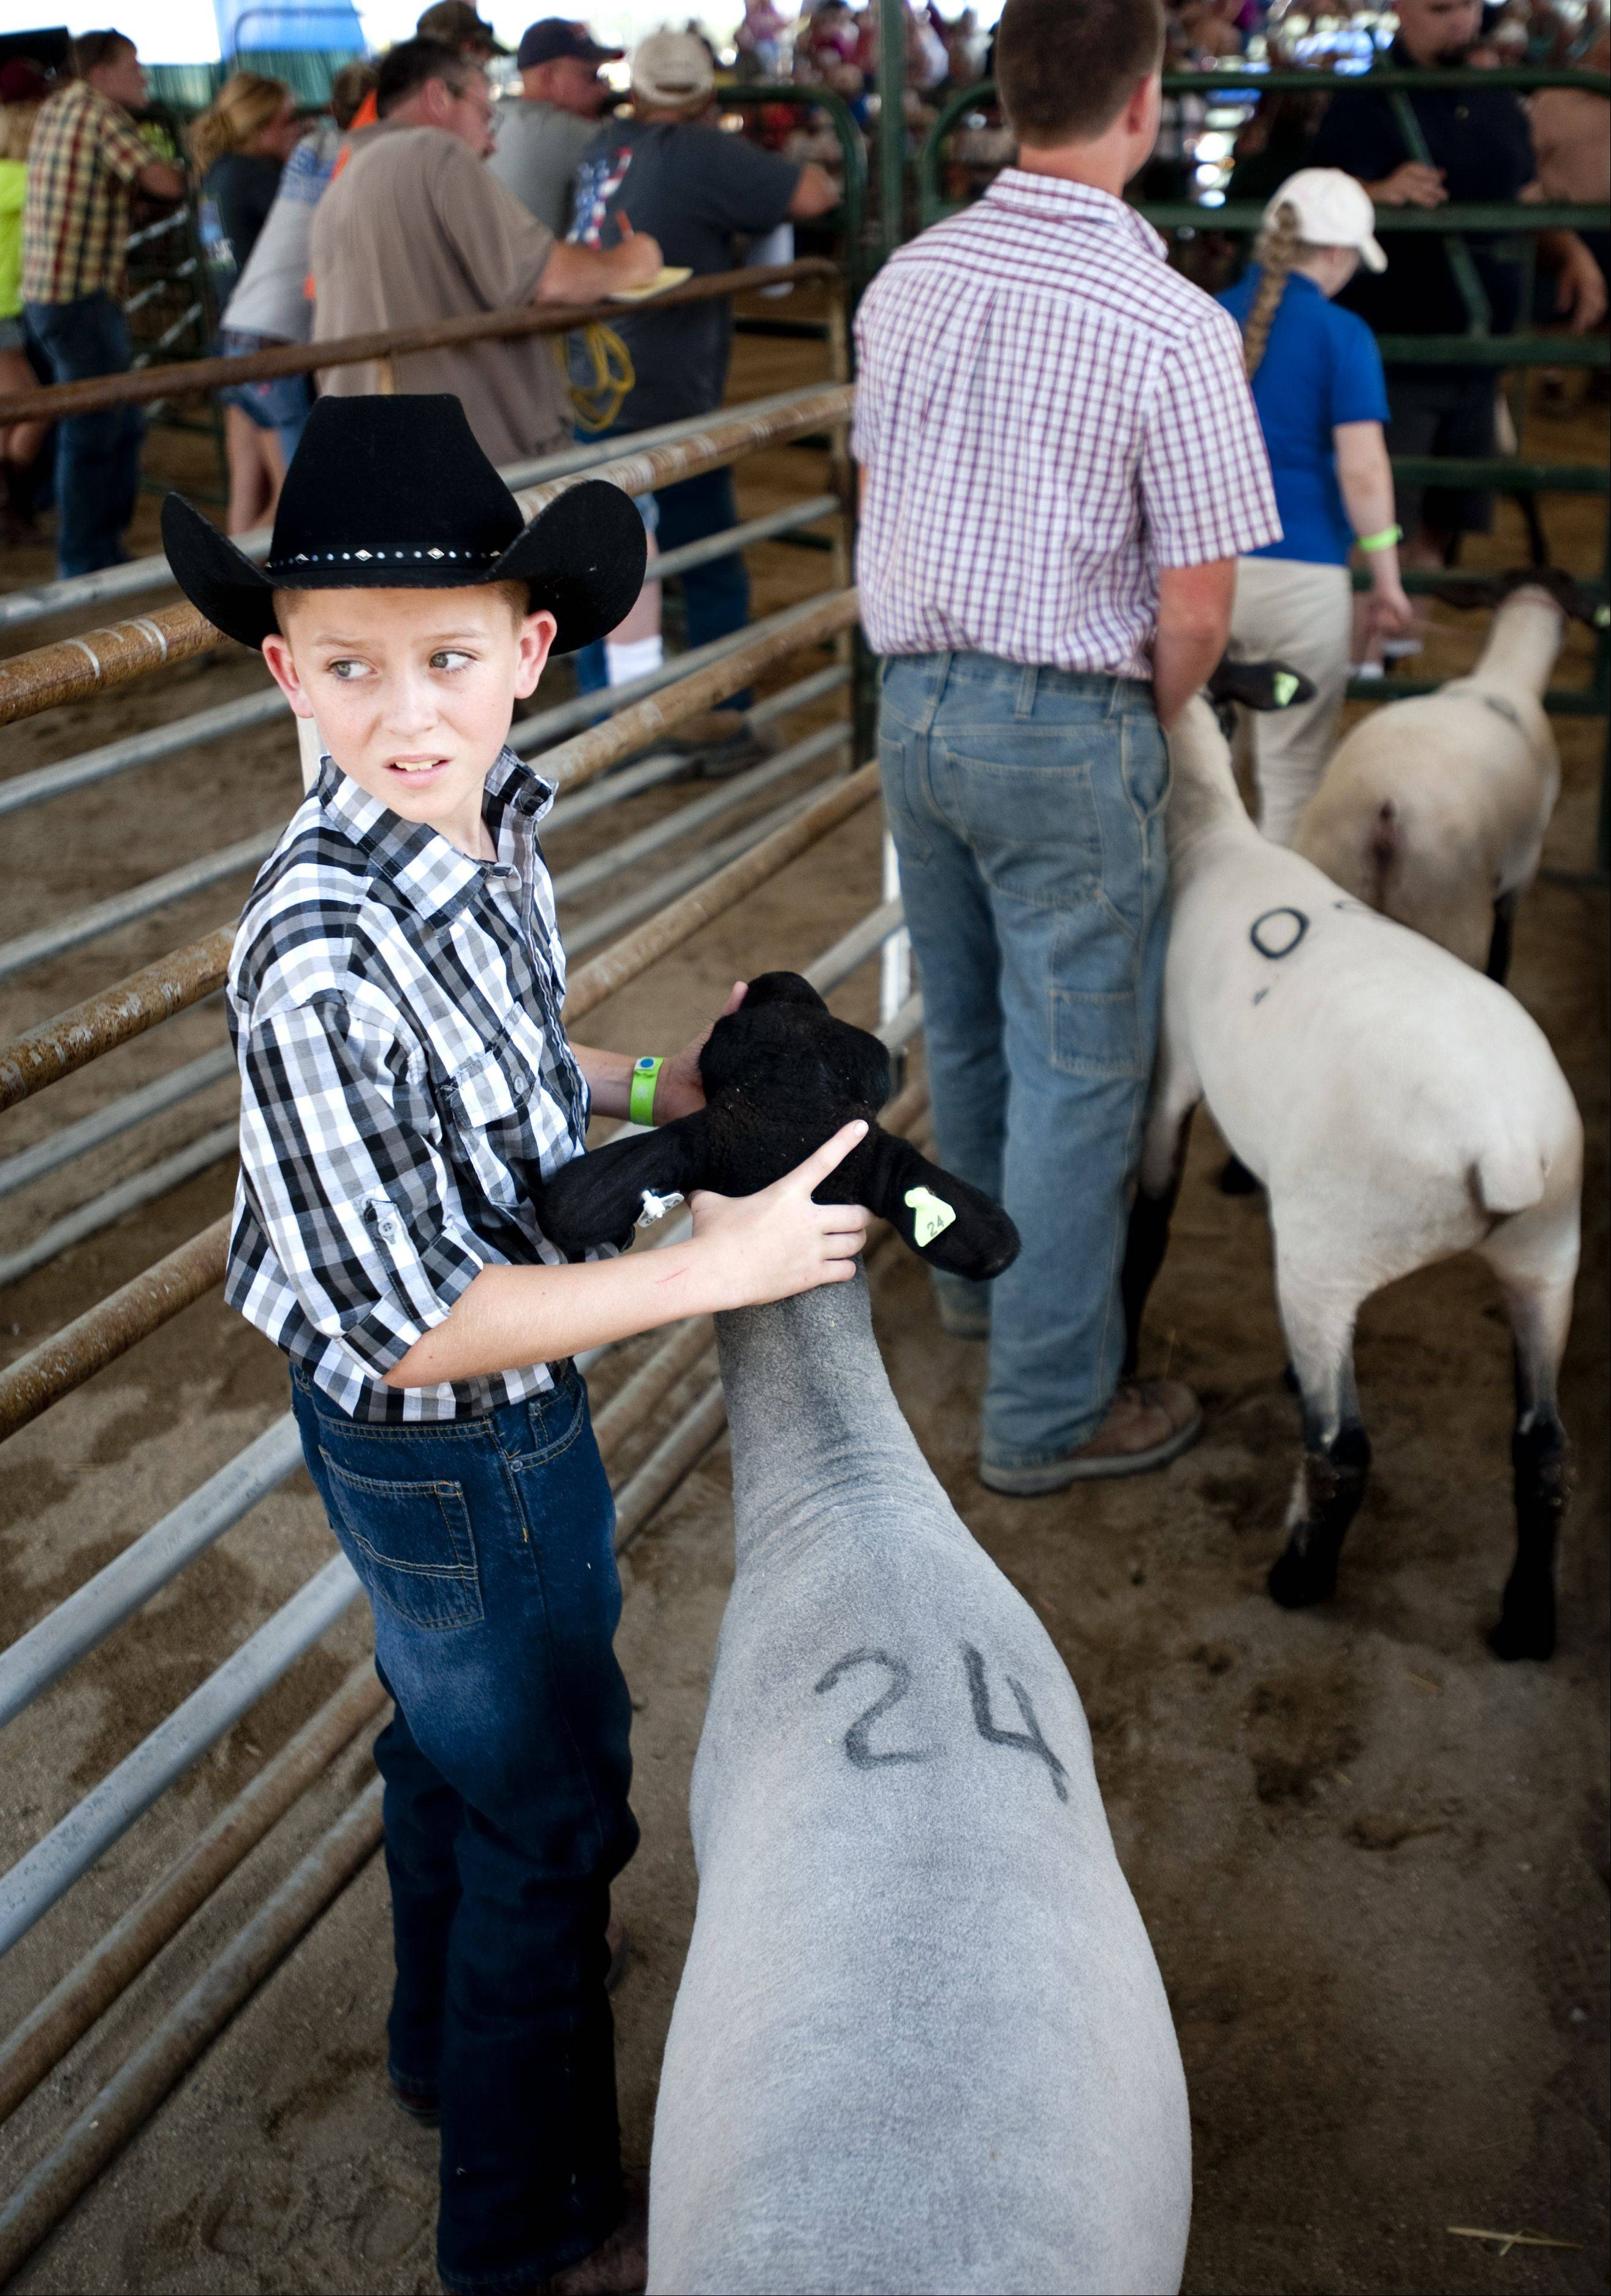 Austin Gratz, 10, of Harvard gets ready to show his sheep at the 4-H Livestock Auction and Sale of Champions at the McHenry County Fair in Woodstock Saturday.